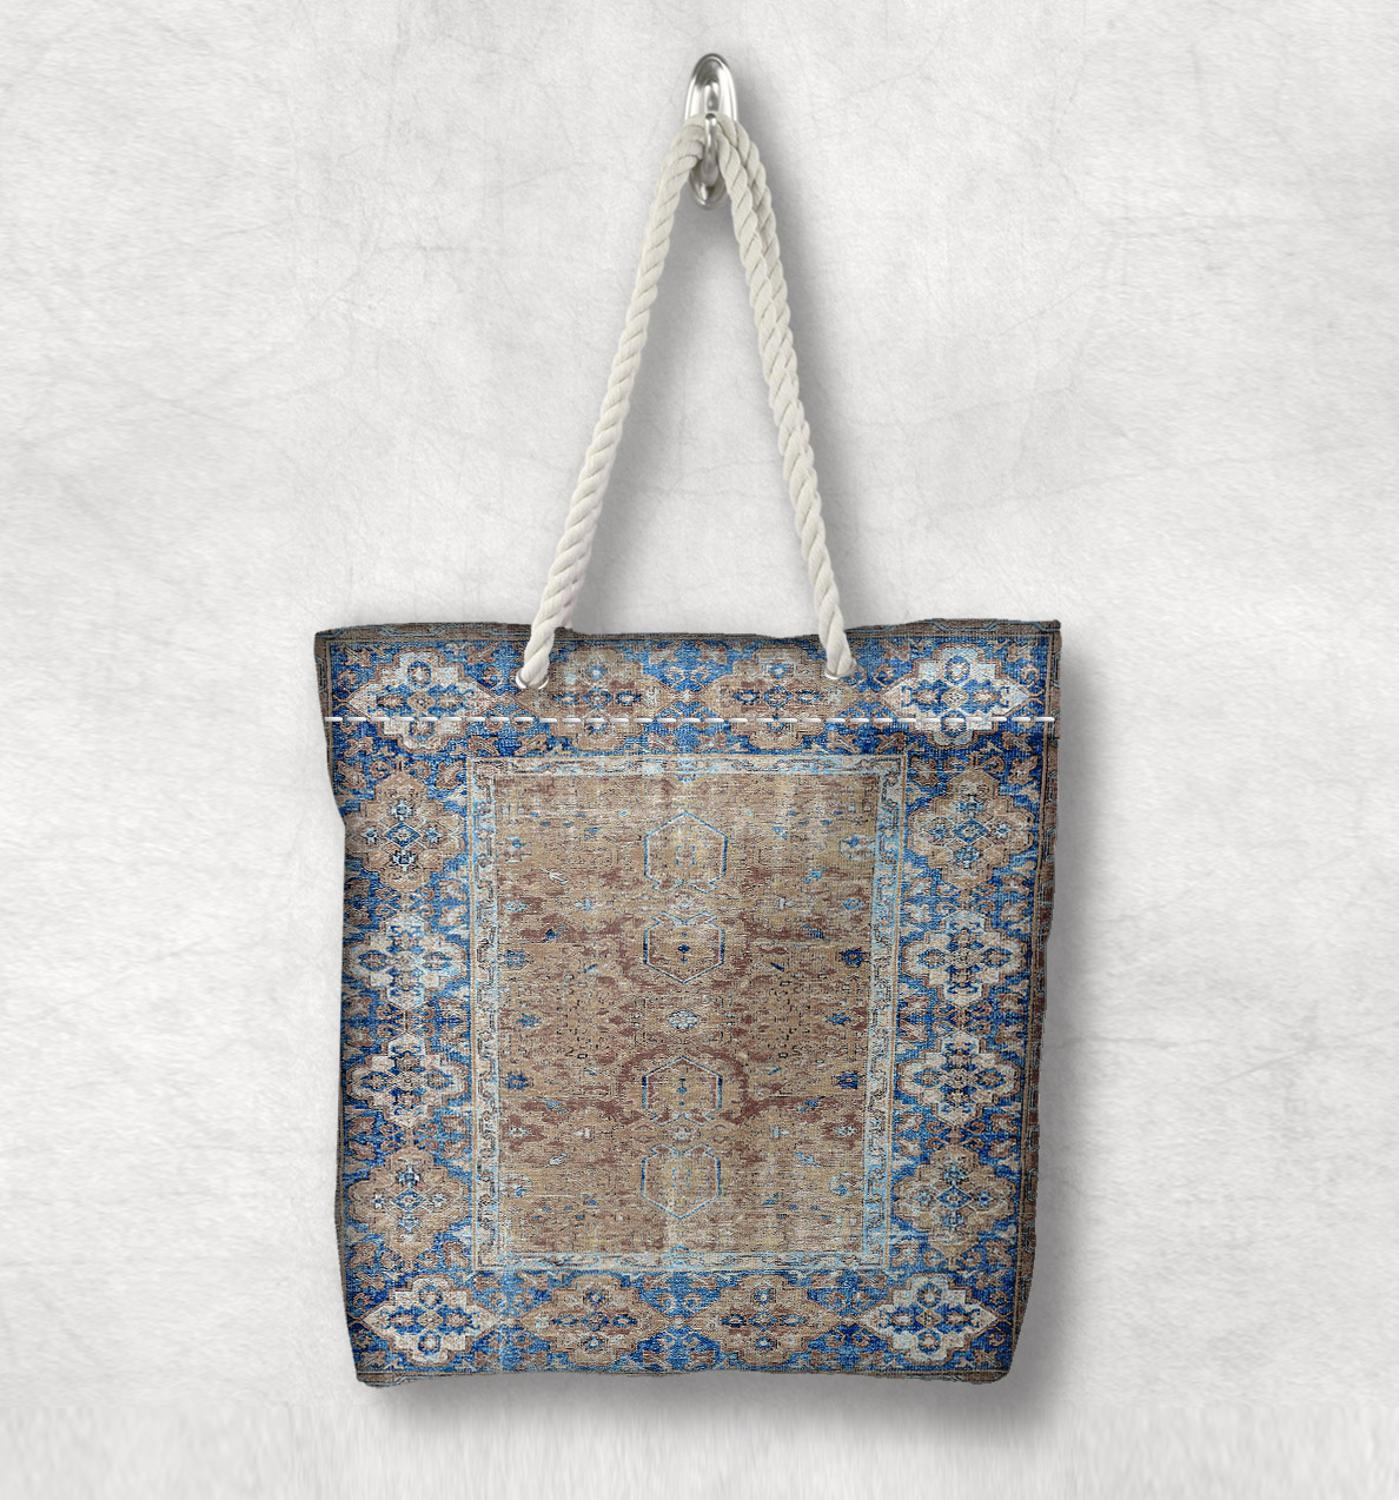 Else Blue Brown Retro Anatolia Antique Kilim Design White Rope Handle Canvas Bag Cotton Canvas Zippered Tote Bag Shoulder Bag